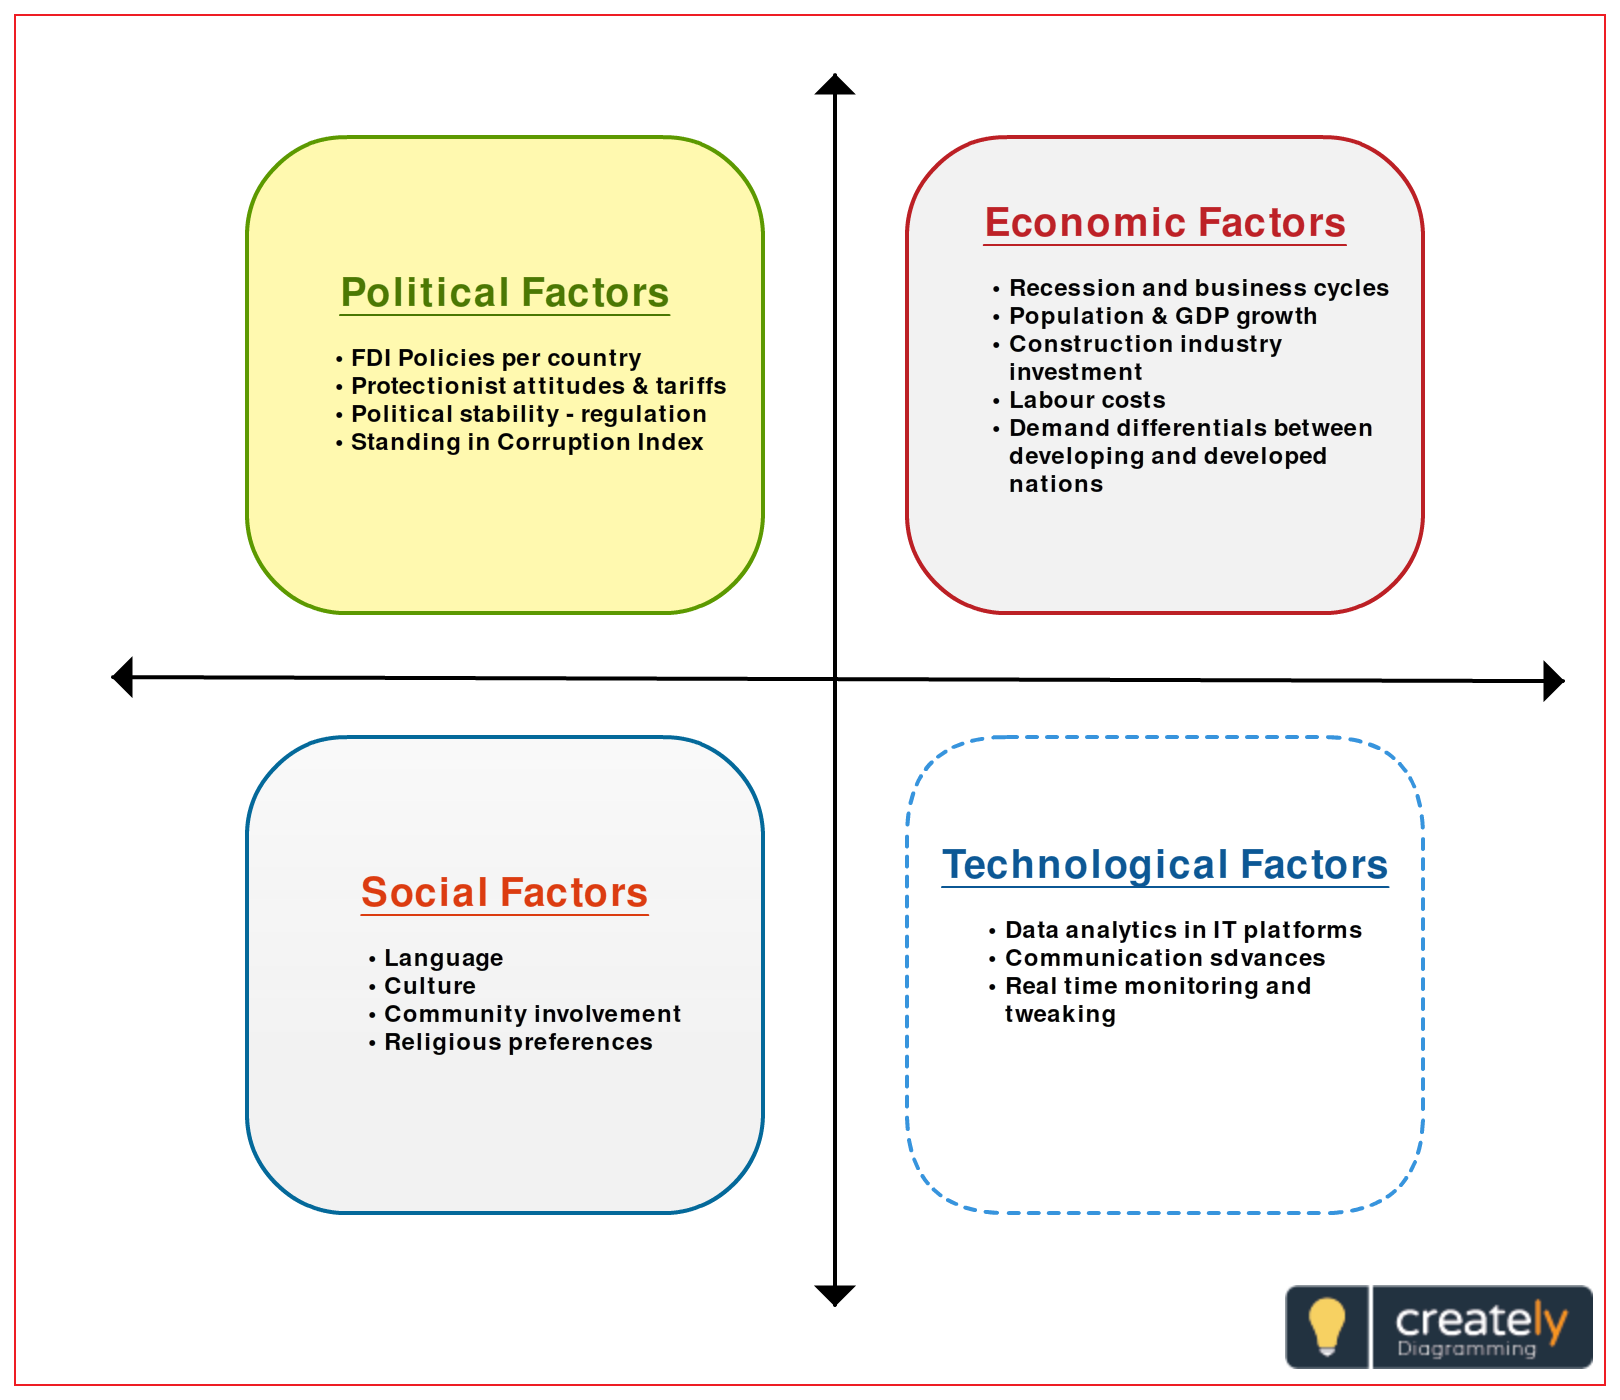 Pest Is A Strategic Planning Tool Used To Evaluate The Impact Political Economic Social And Technological Factors Developed Nation Data Analytics Analysis